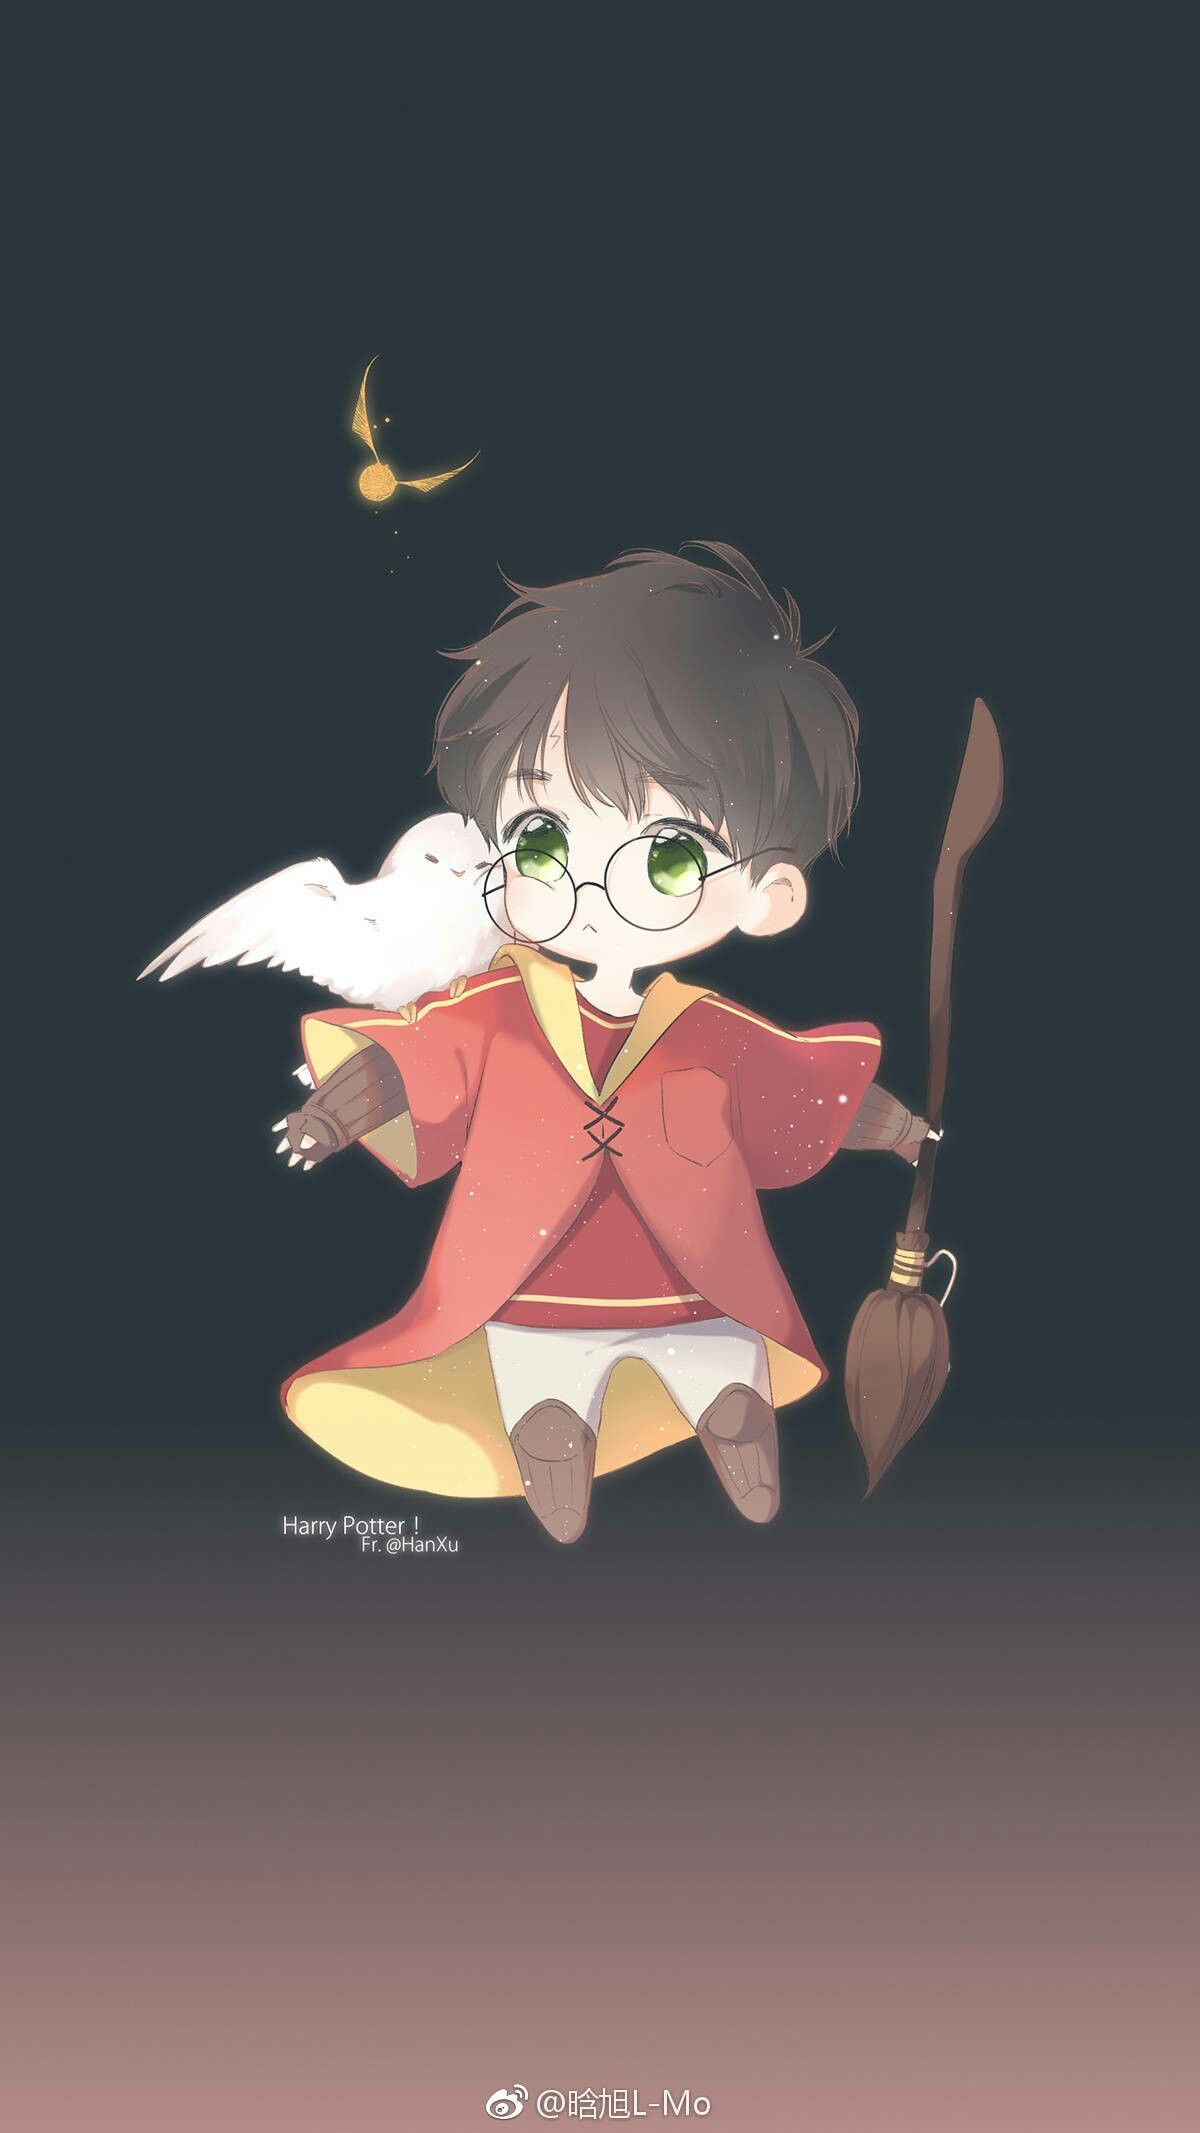 Harry Potter Anime, Harry Potter Vui Nhộn, Minh Họa - Harry Potter Anime Drawing , HD Wallpaper & Backgrounds